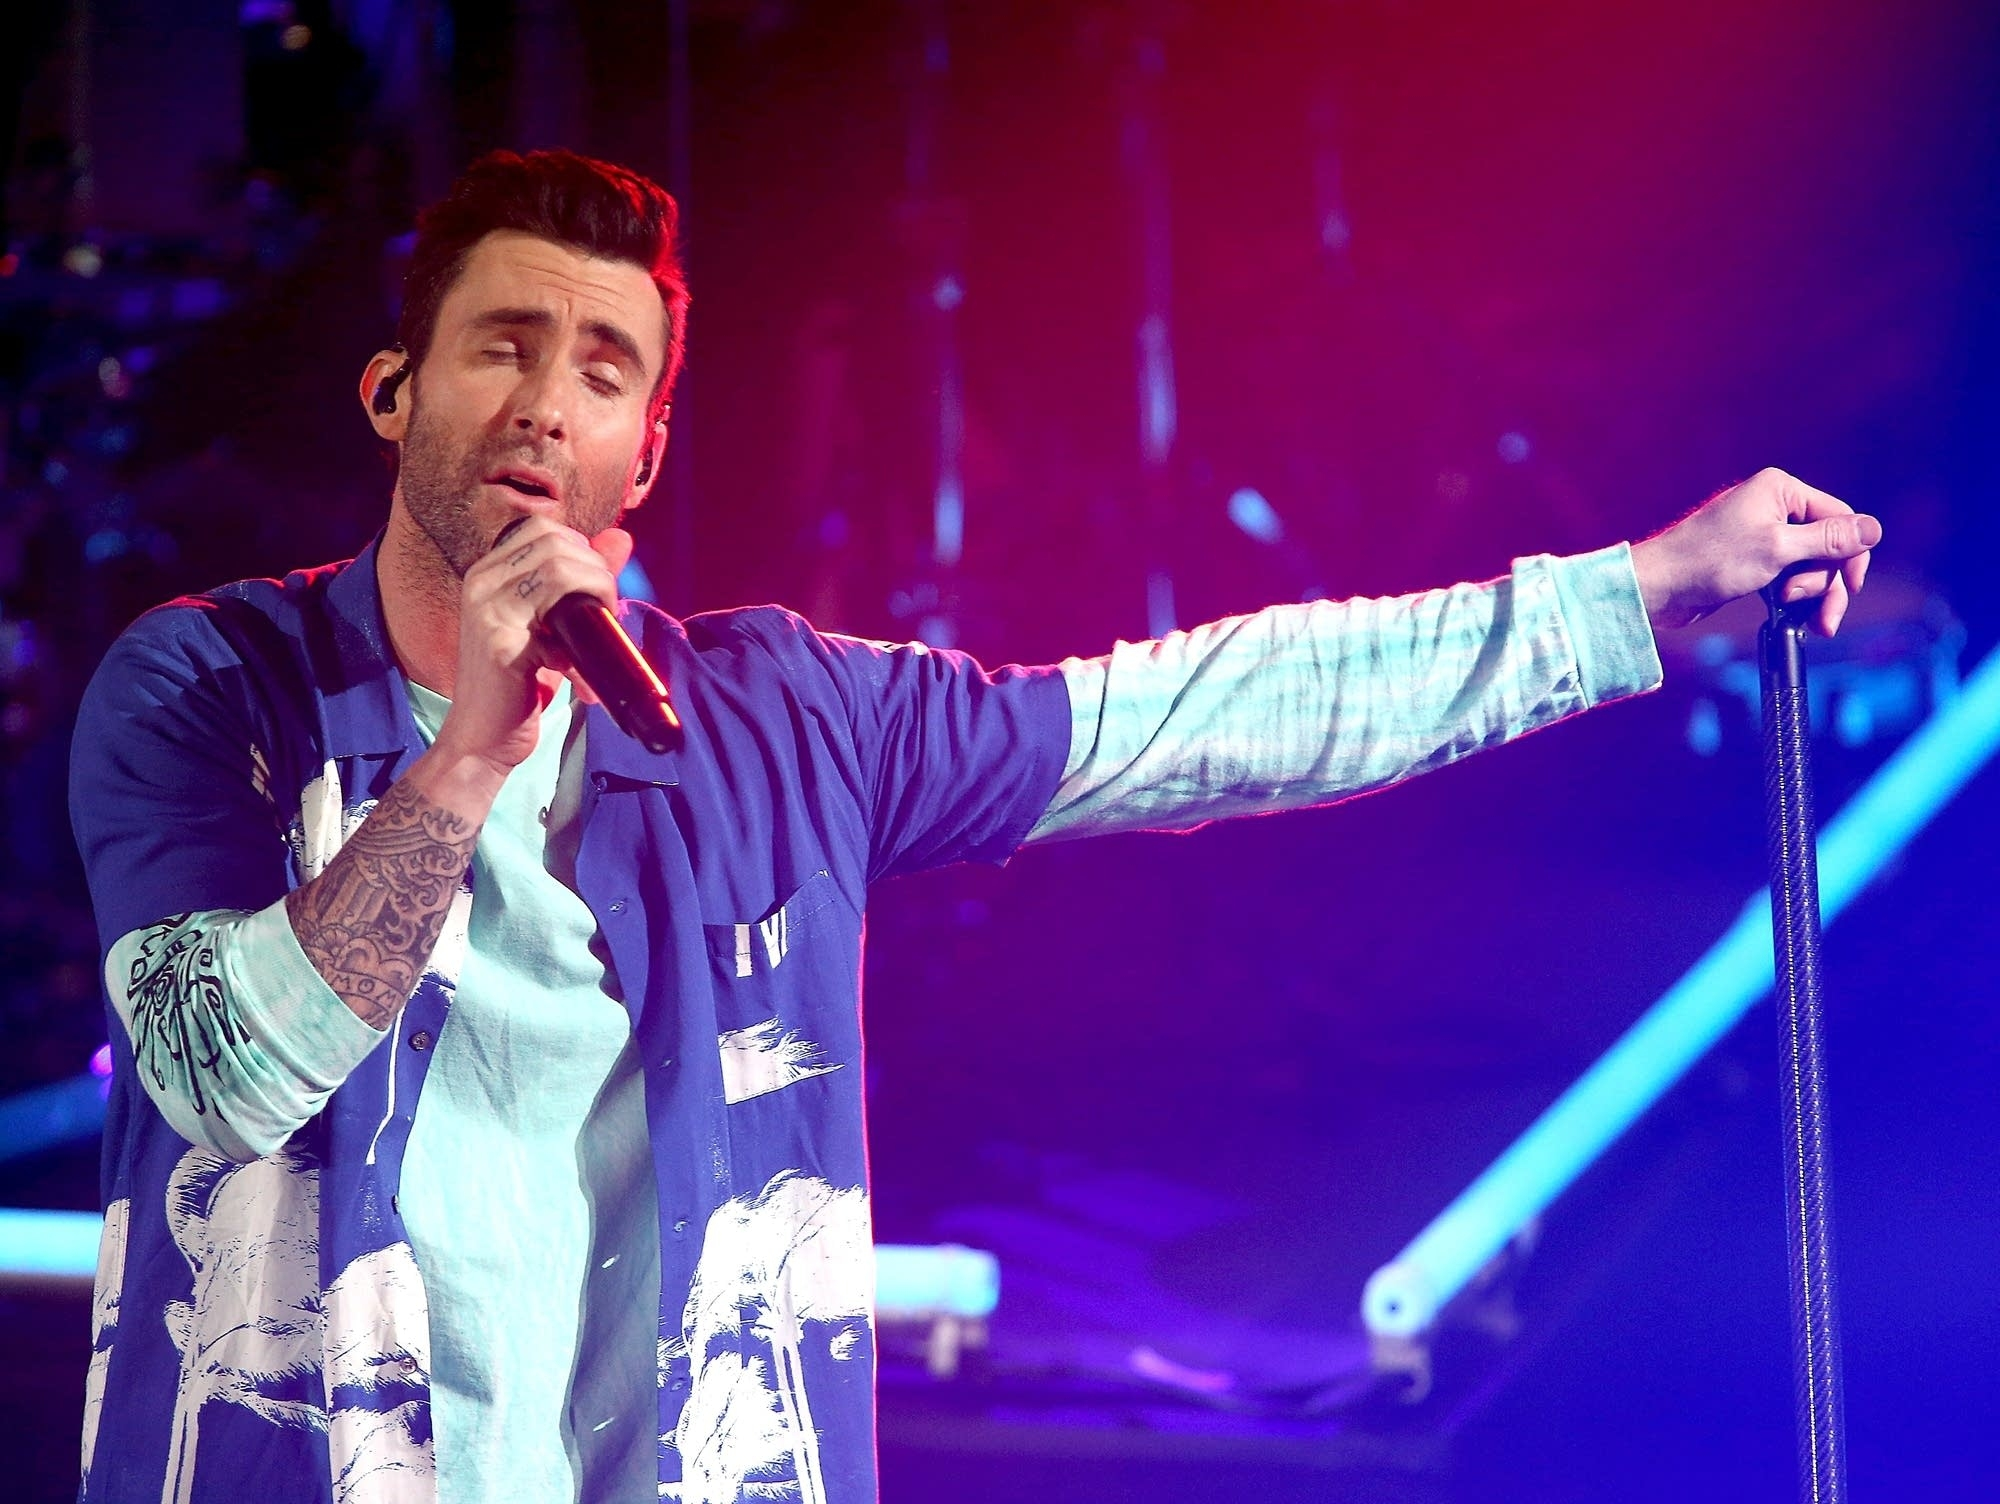 Music News: Maroon 5 Rumored For Super Bowl Liii Halftime within Maroon 5 Super Bowl Liii